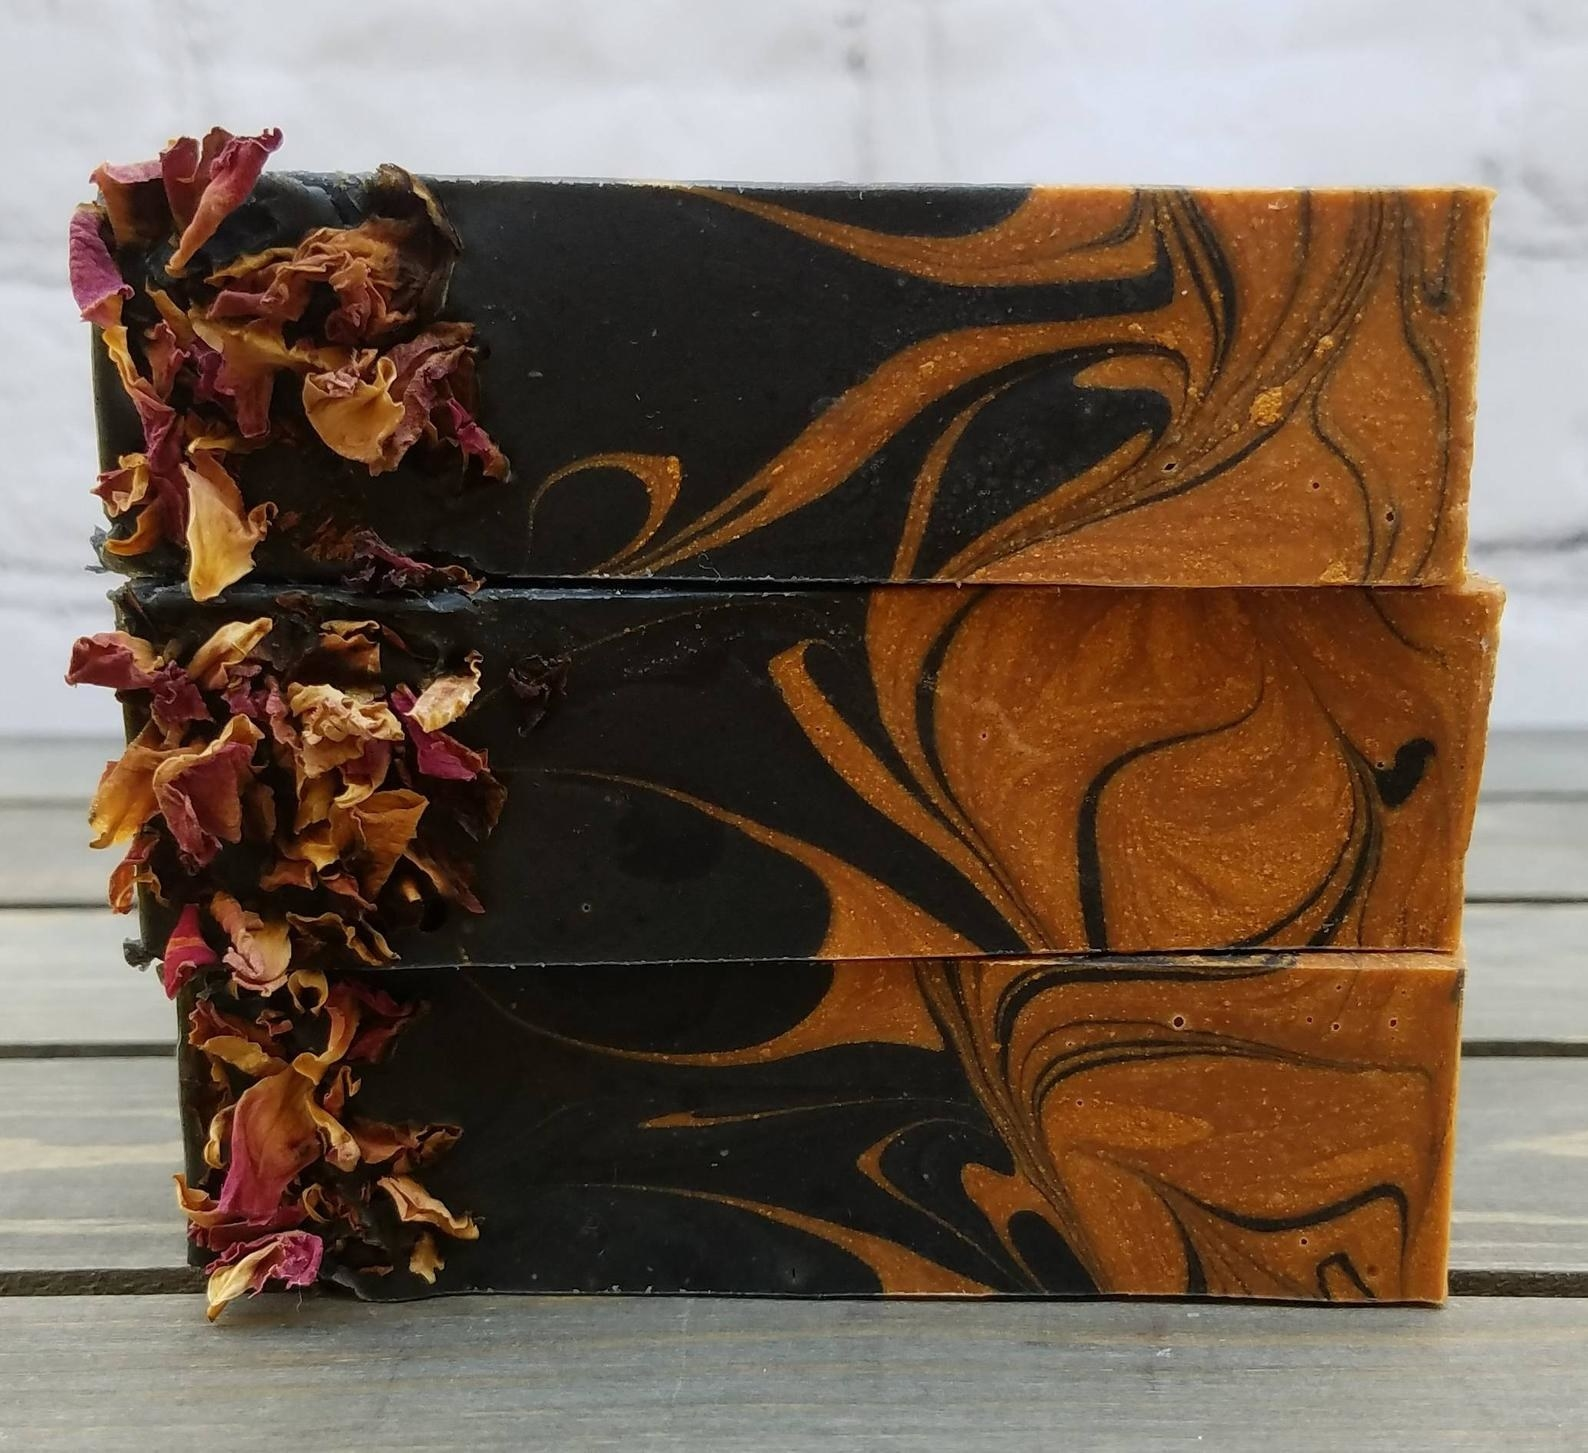 black and gold swirled soap with dry flyers attached to side